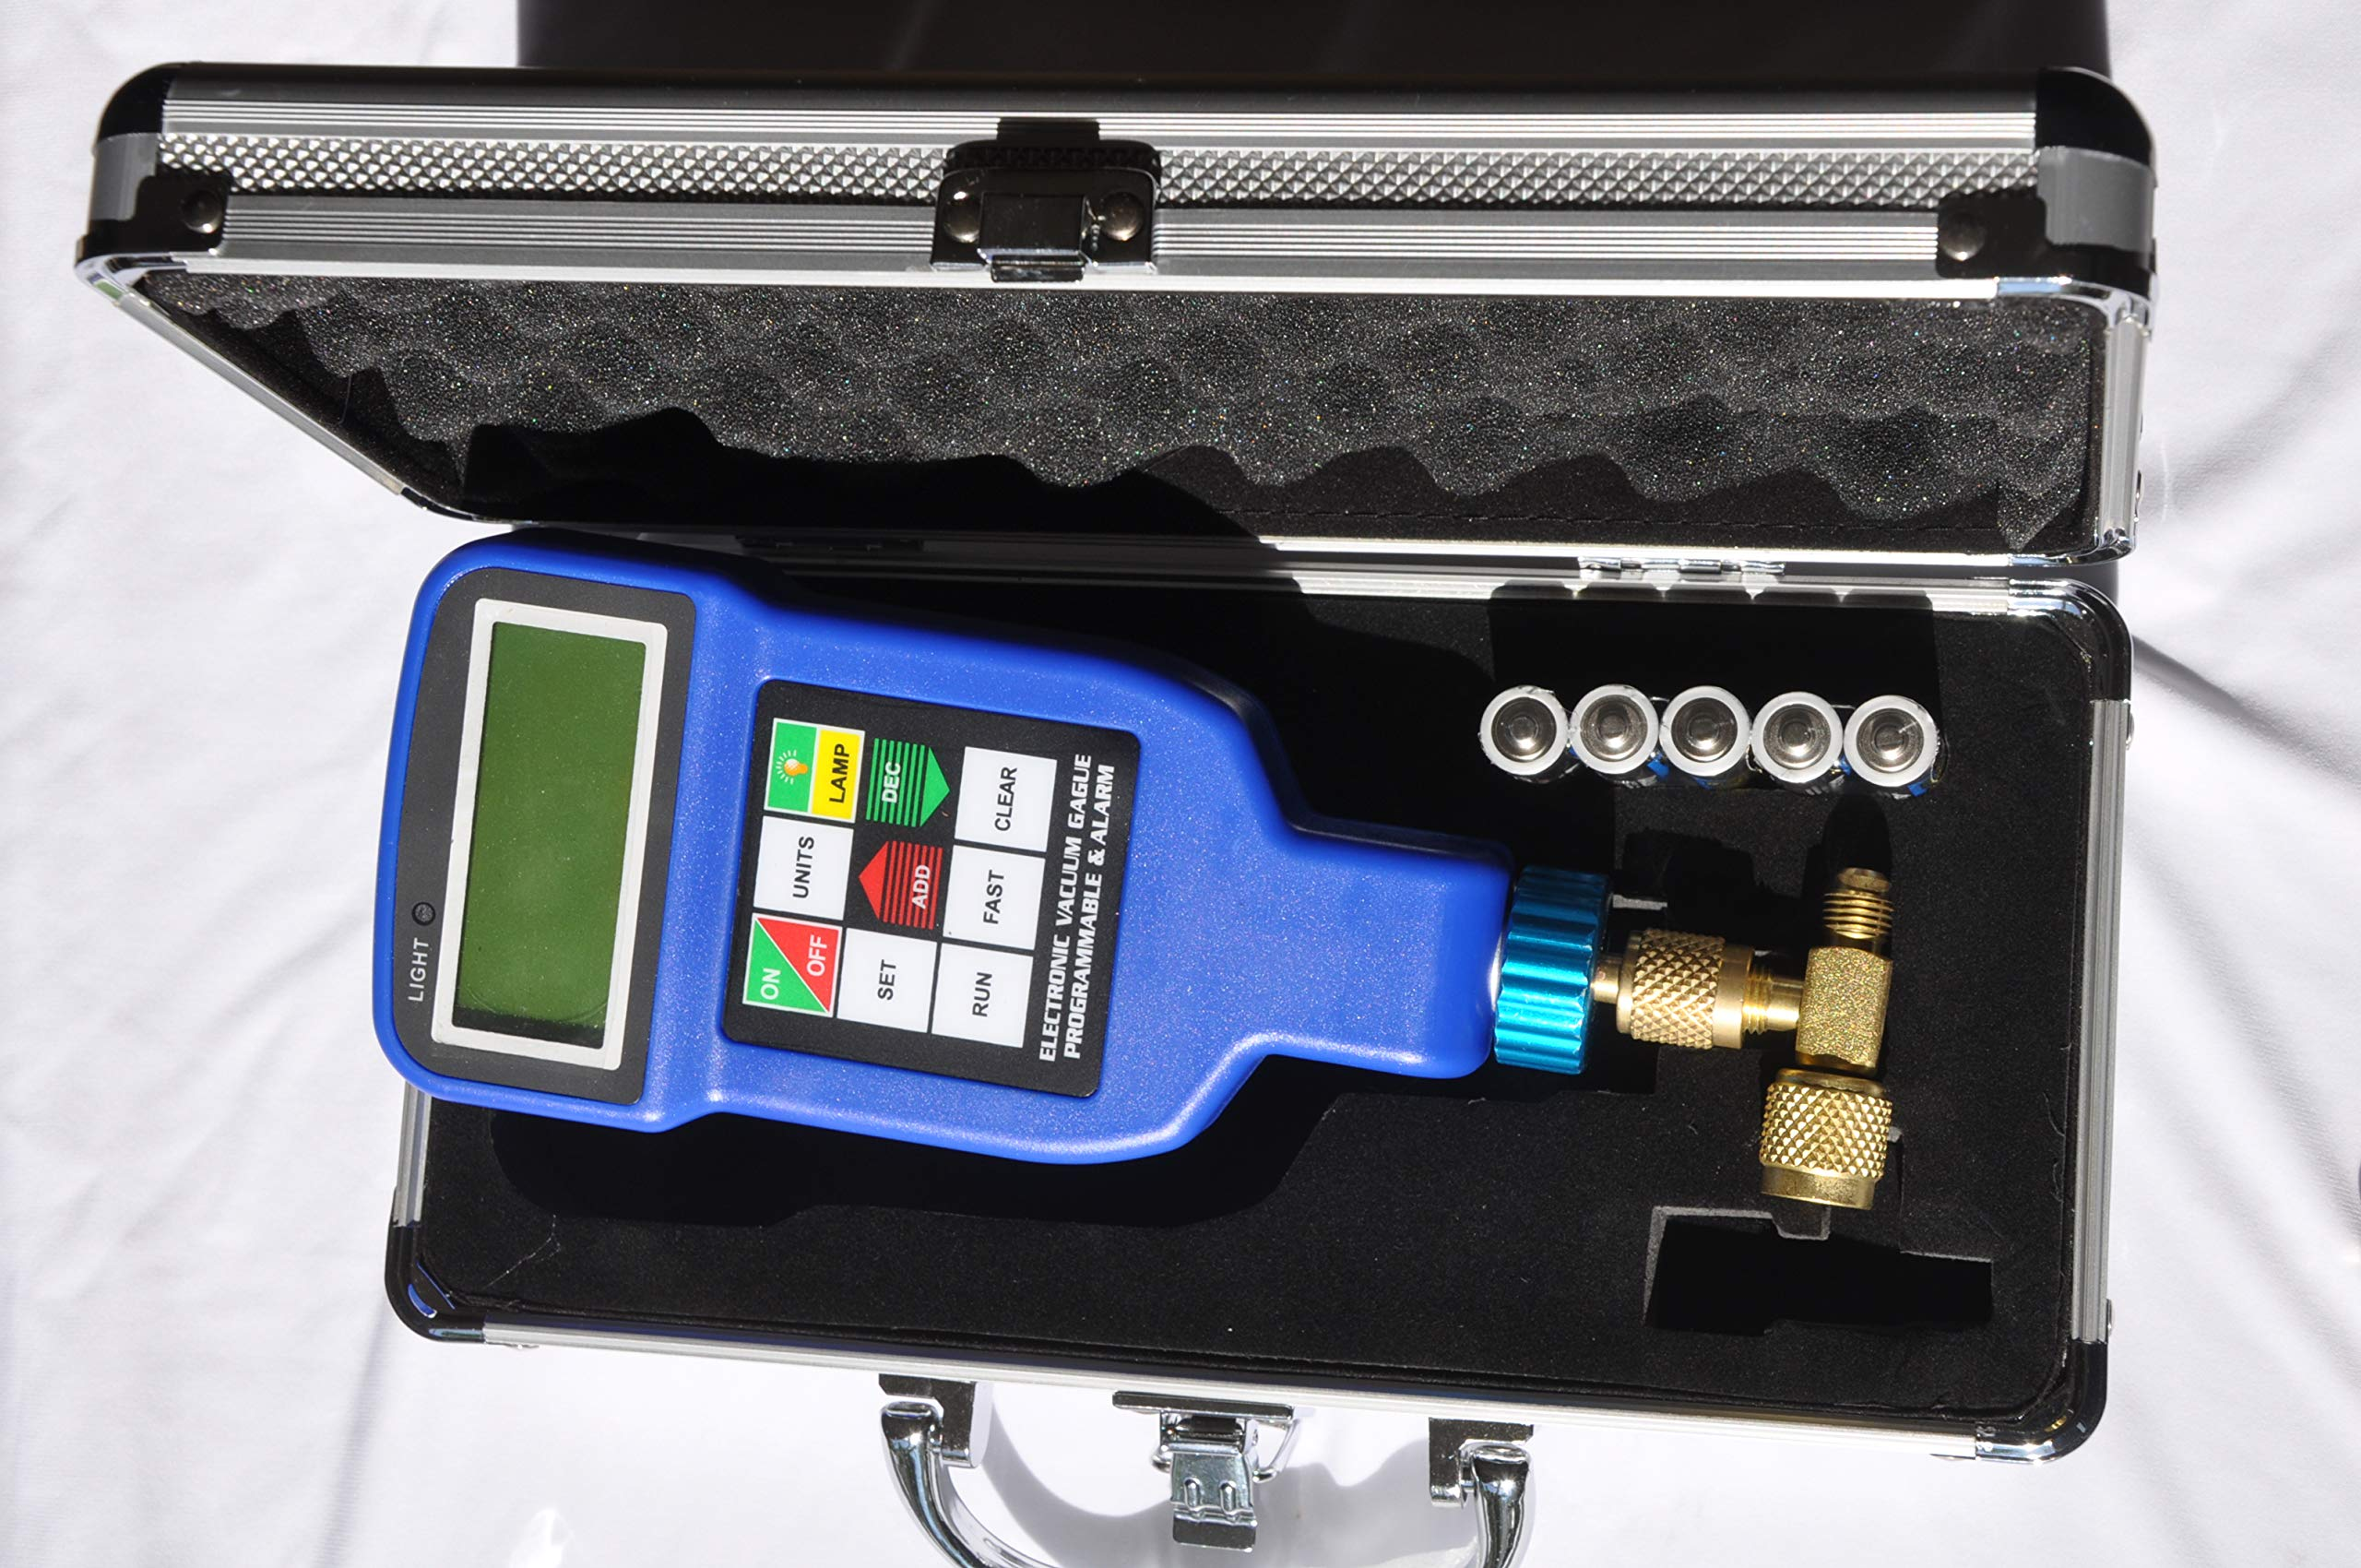 Deep Vacuum Micron Gauge/Digital Meter: AC HVAC Air Condition Refrigeration System Evacuation Optimum Test Tool, Most Accurate on The Market by VIOT (Image #4)